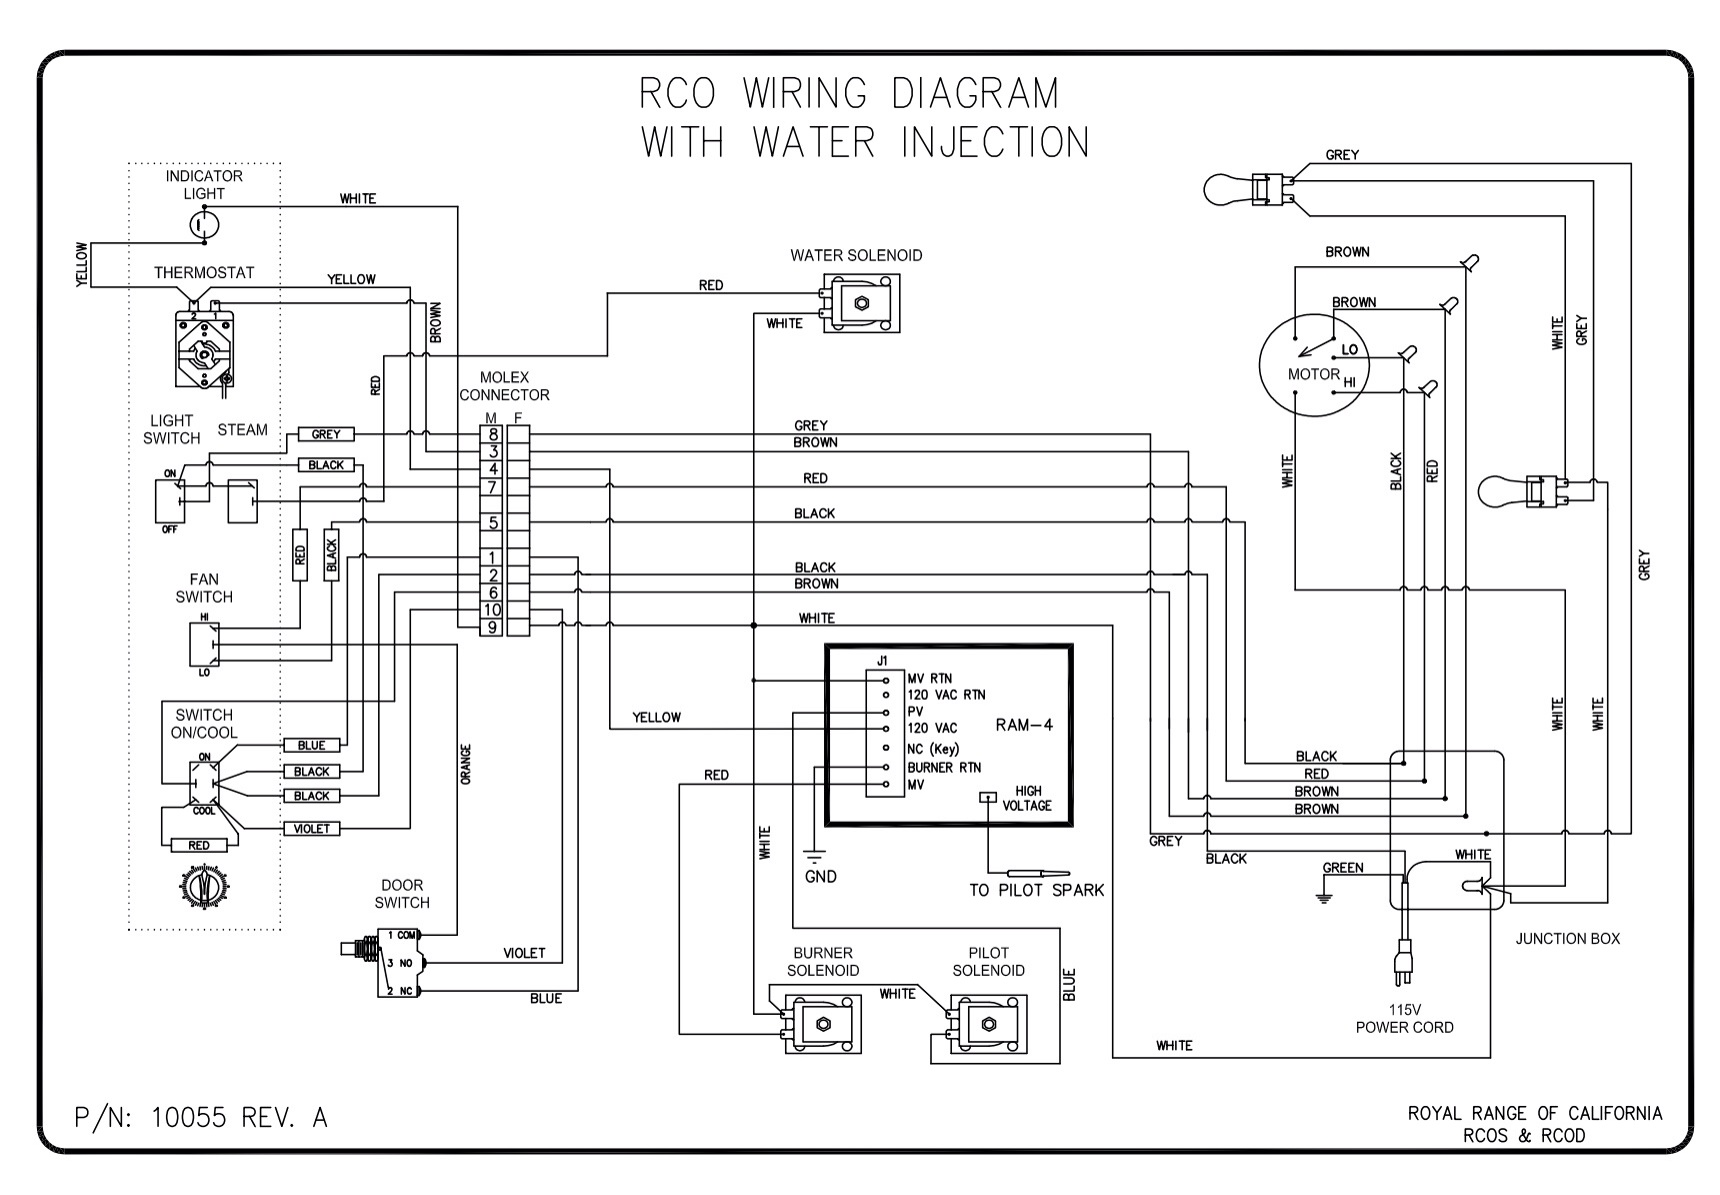 C300 Fuse Diagram Electrical Wiring Diagrams 2008 Ranger Box Mercedes 4matic Trusted 2002 Ford Chart